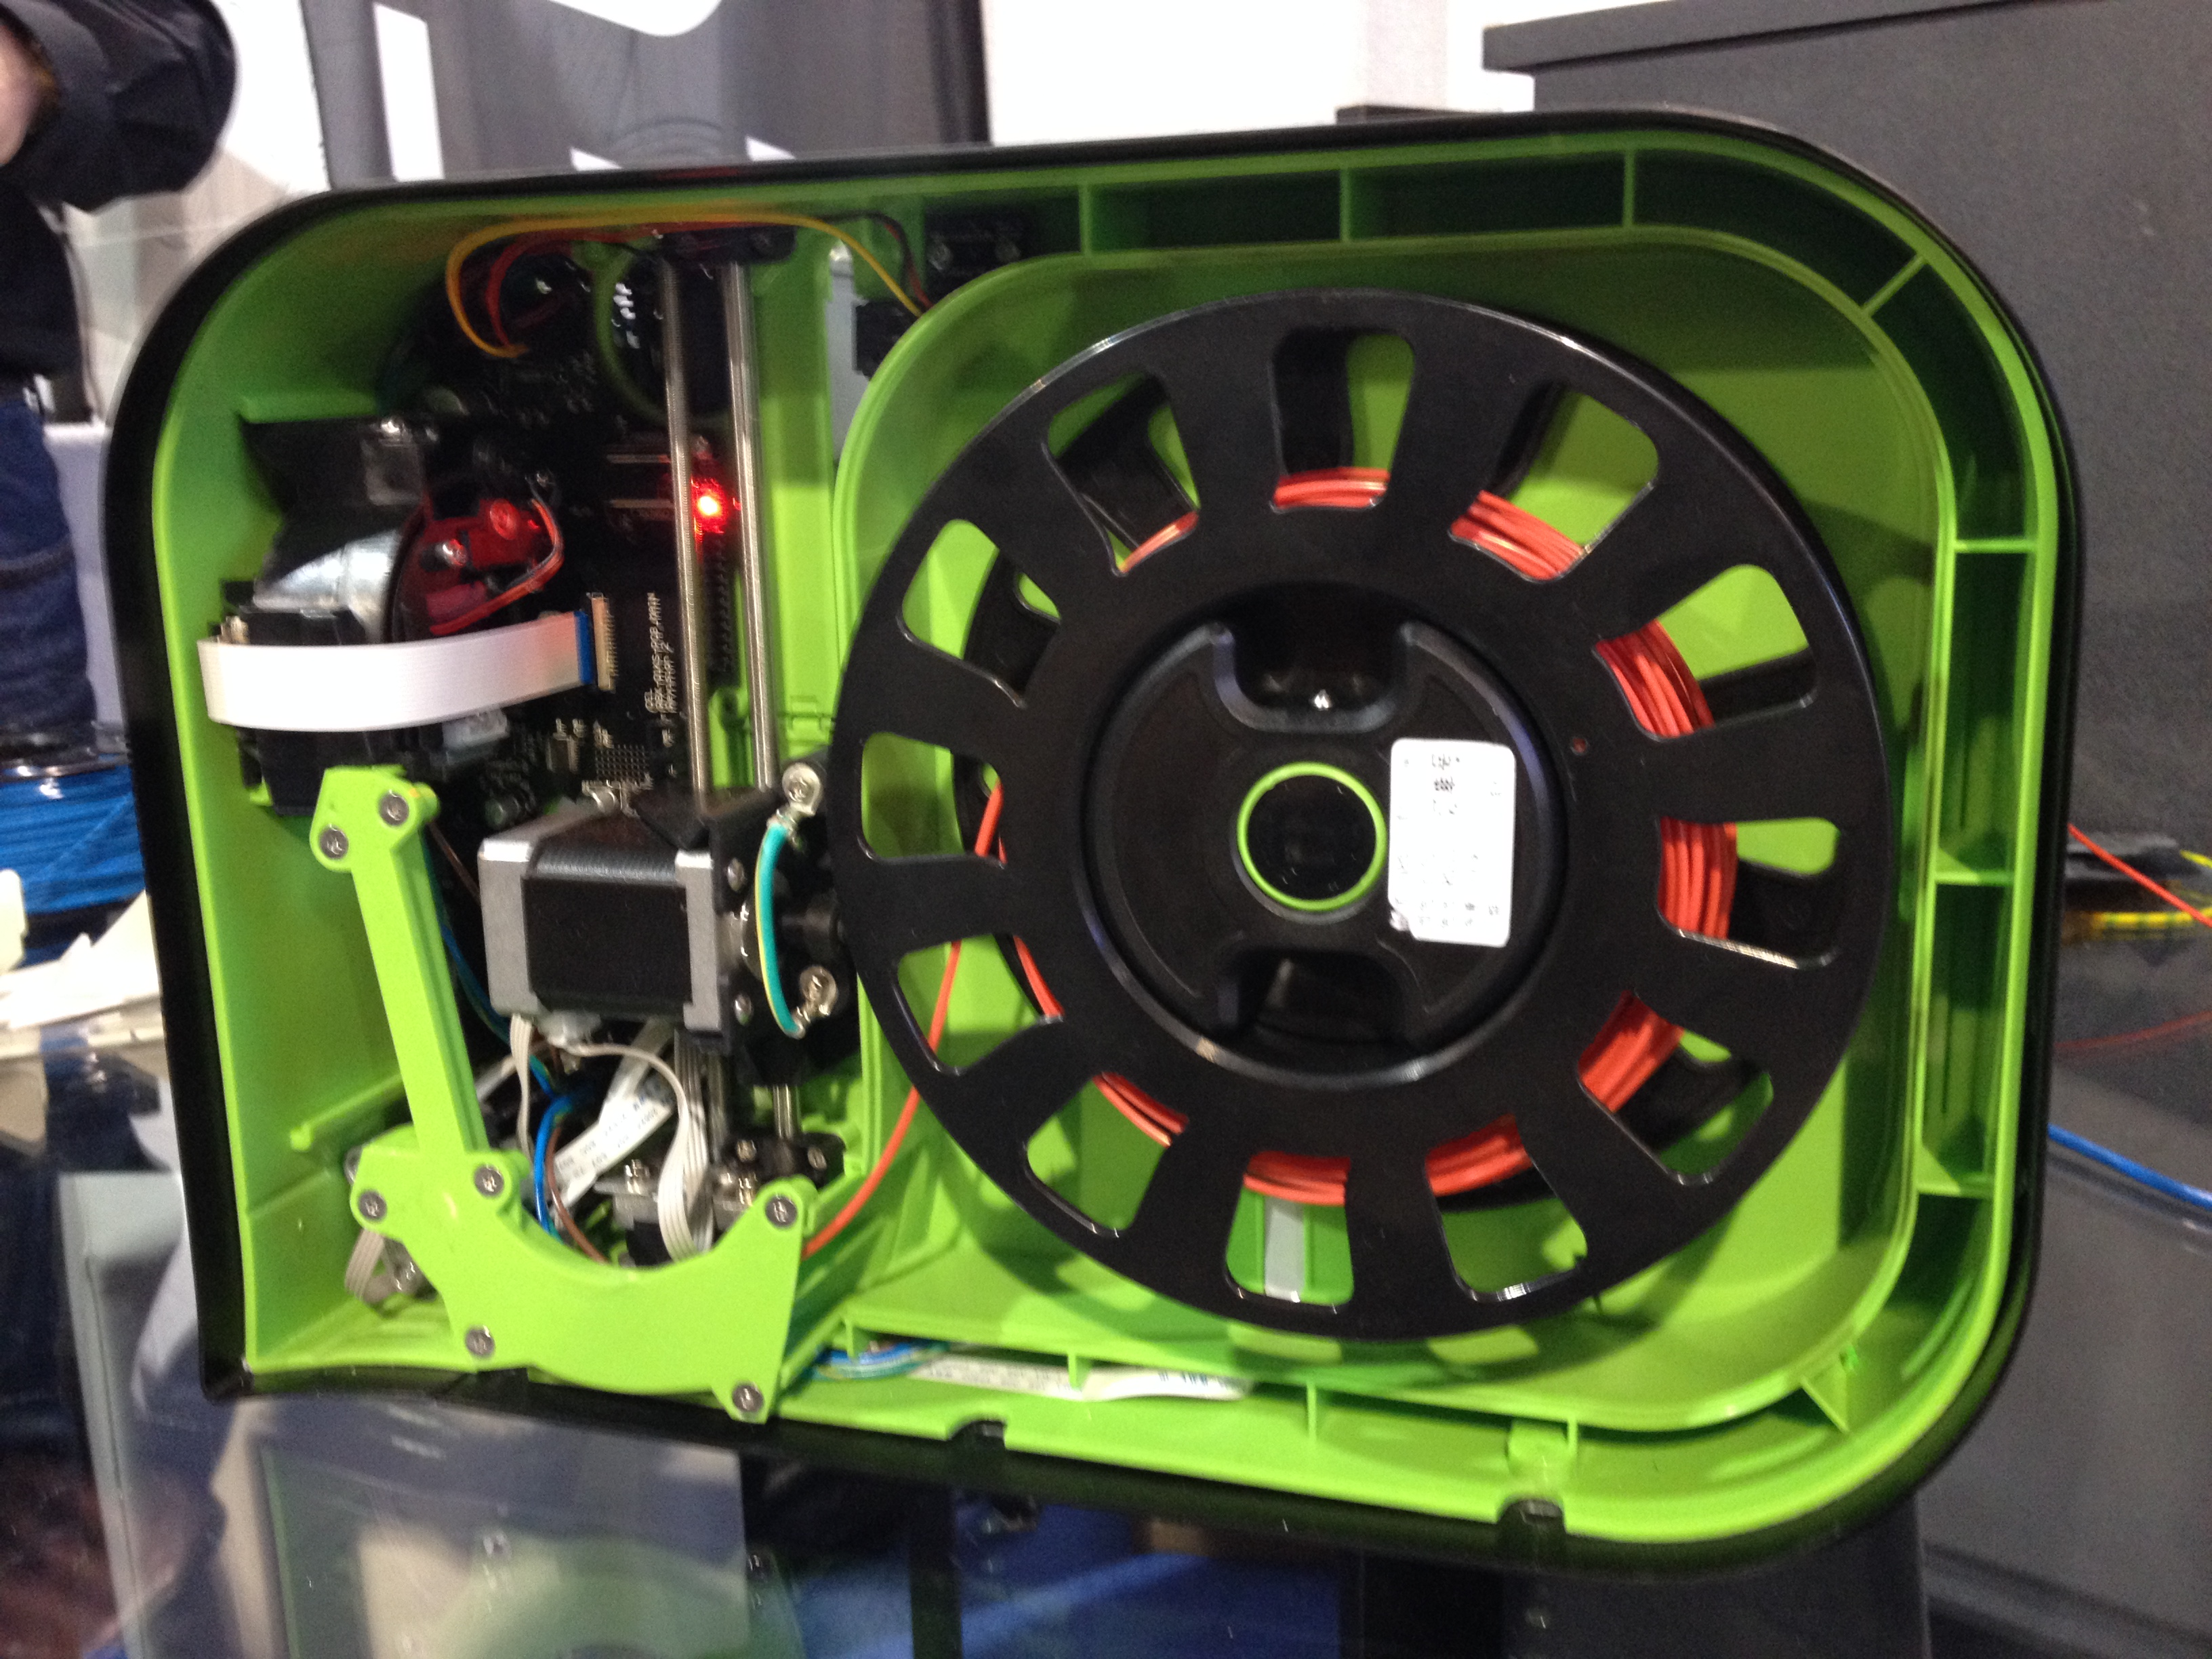 Inside the Robox at CES 2014